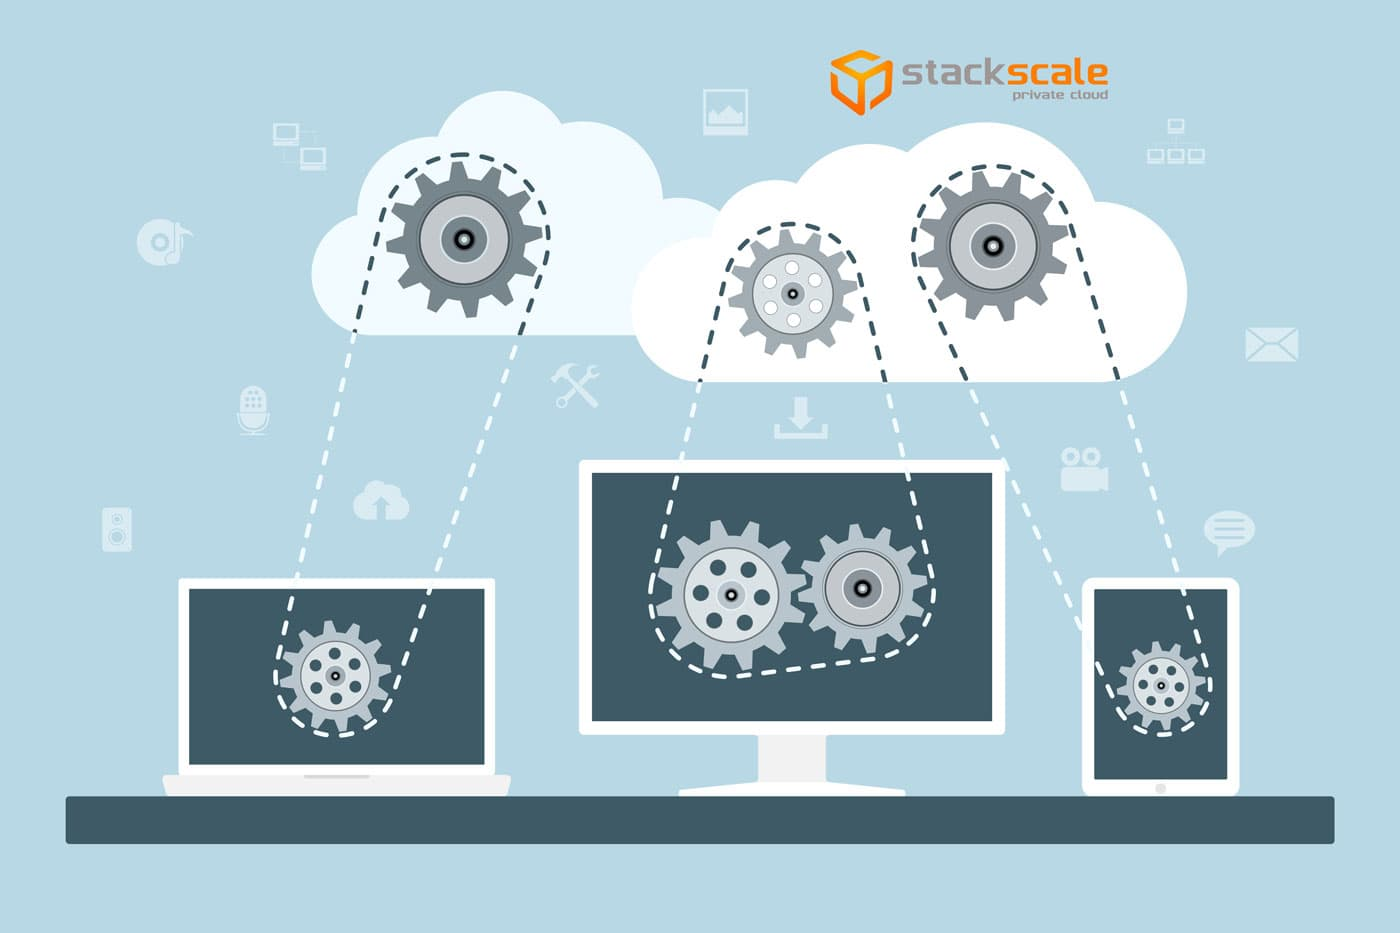 cloud-computing-stackscale-que-es-la-sobresuscripcion